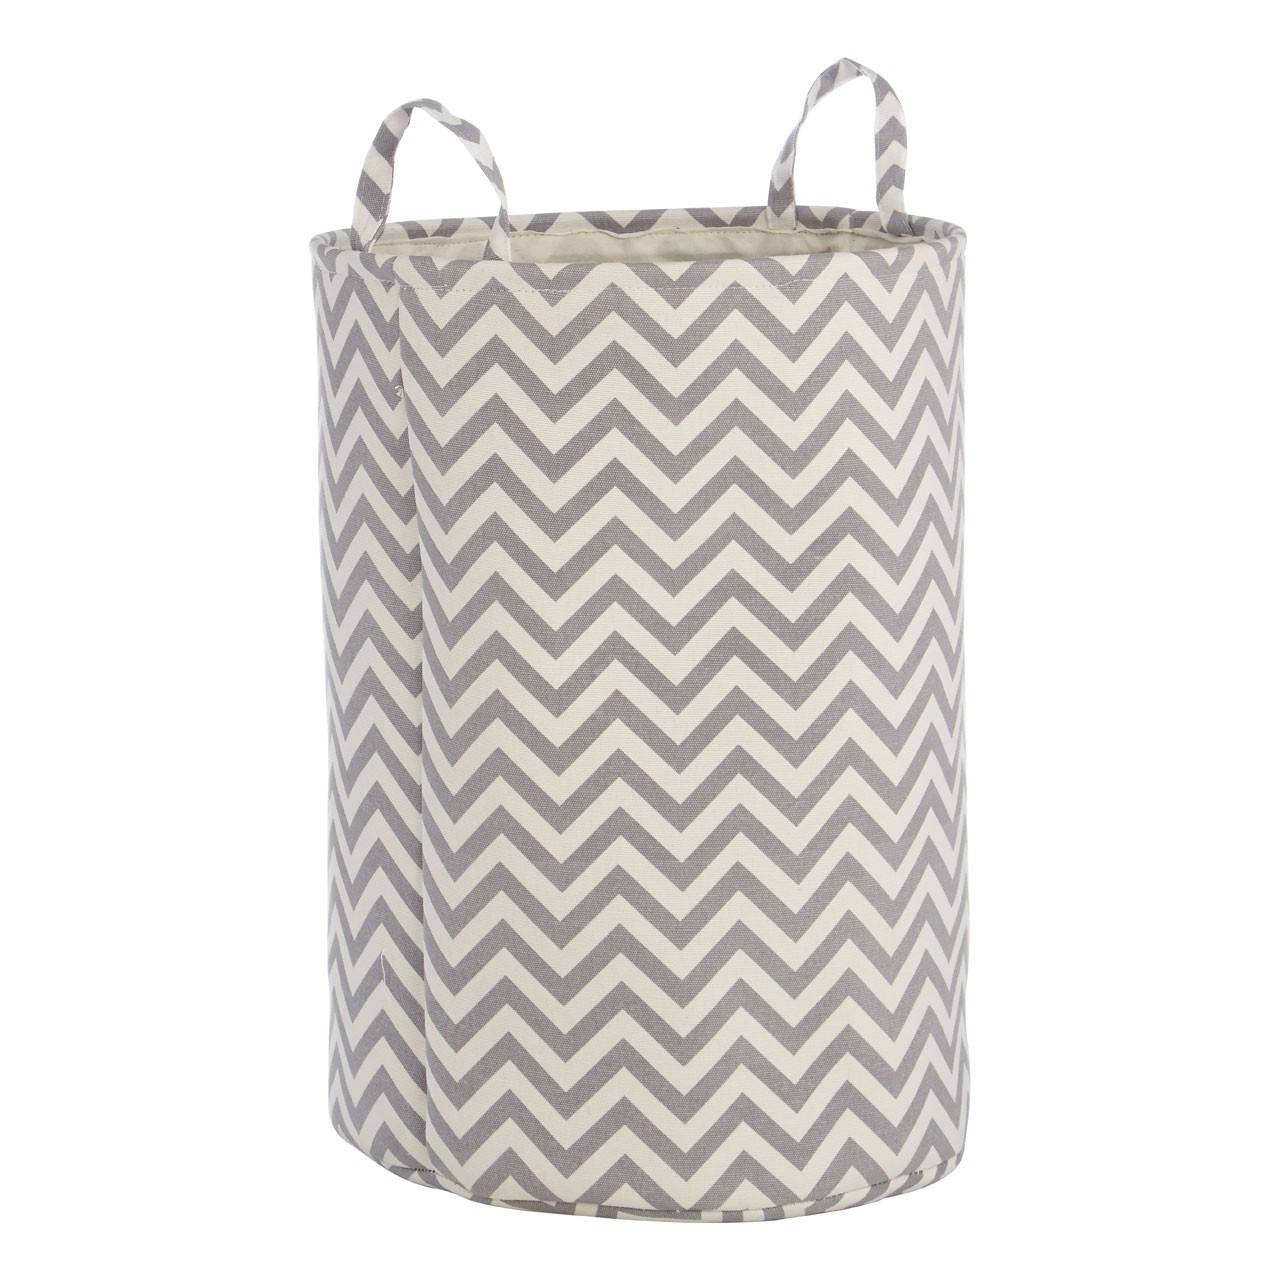 Prime Furnishing Laundry Hamper - White / Grey Chevron